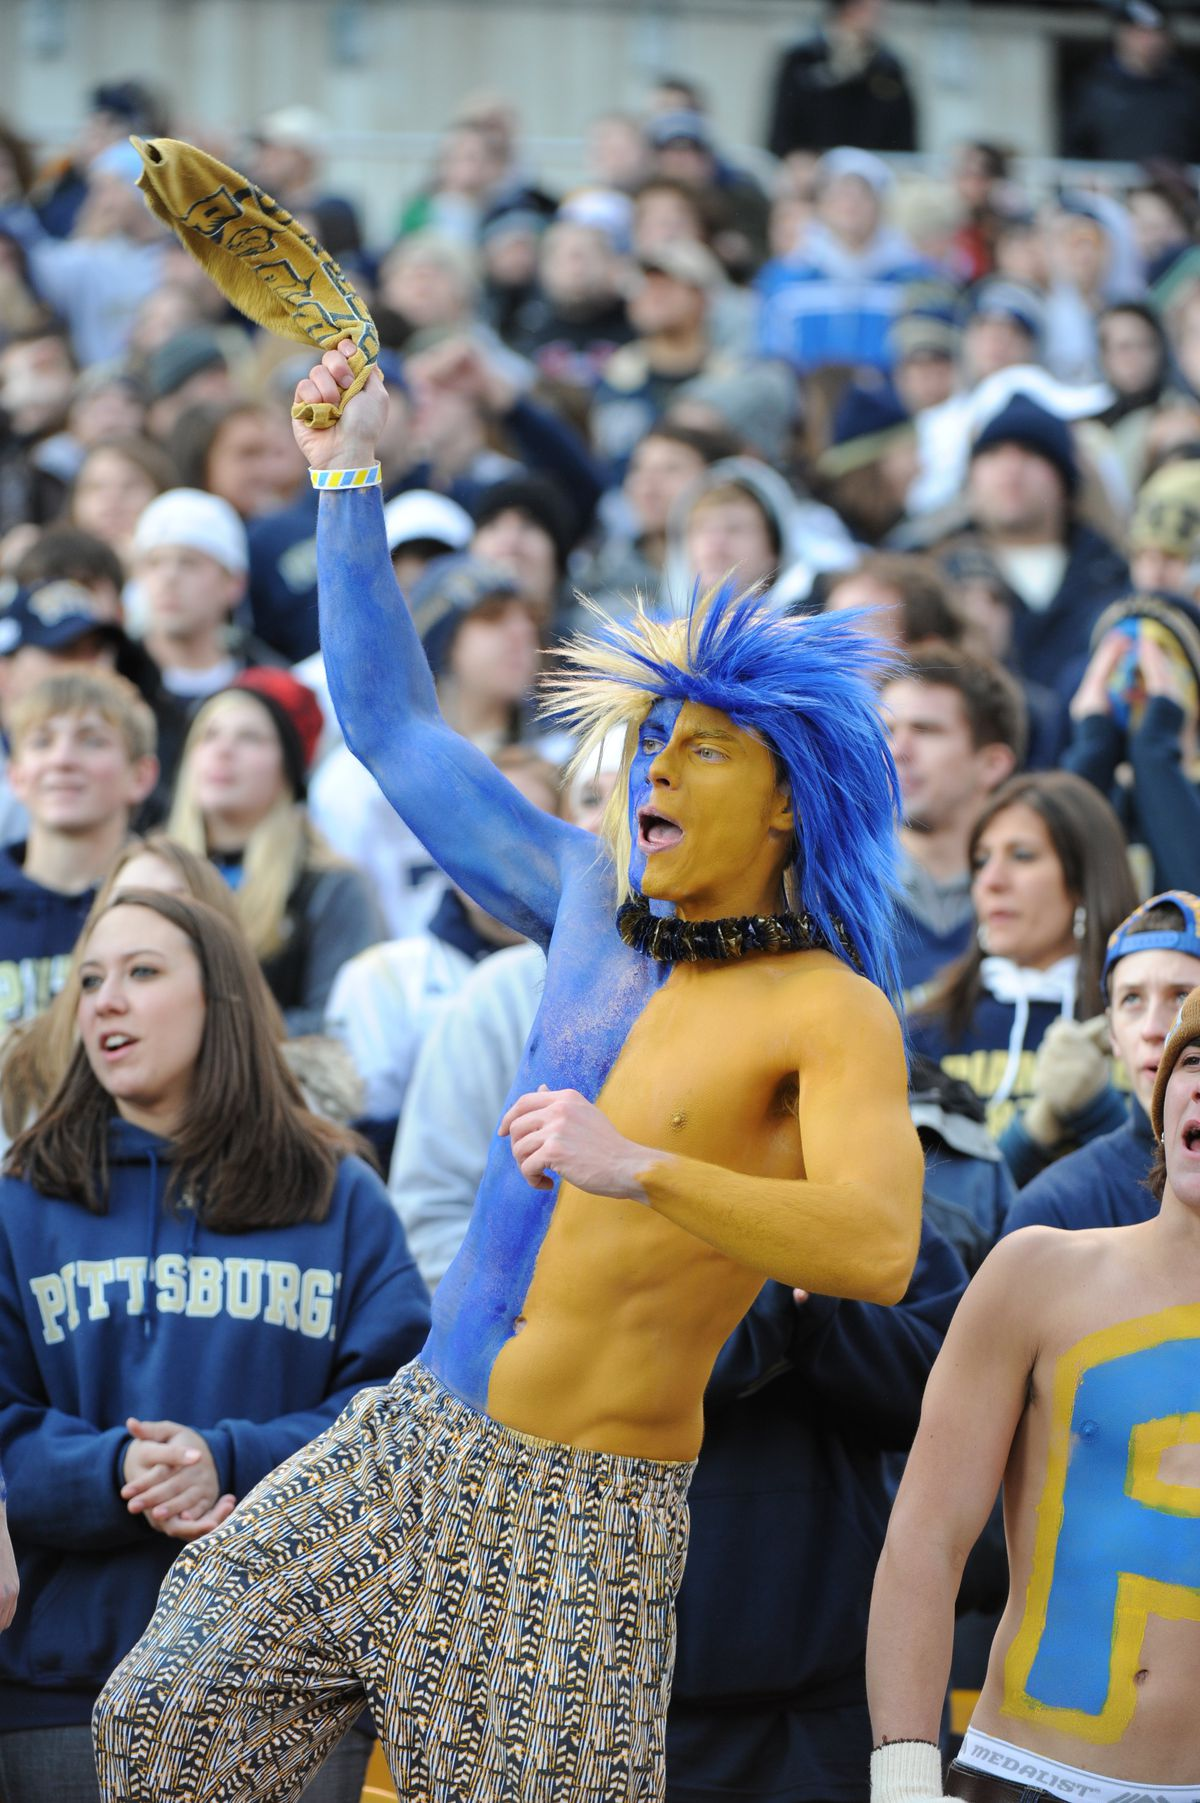 West Virginia Mountaineers v Pittsburgh Panthers